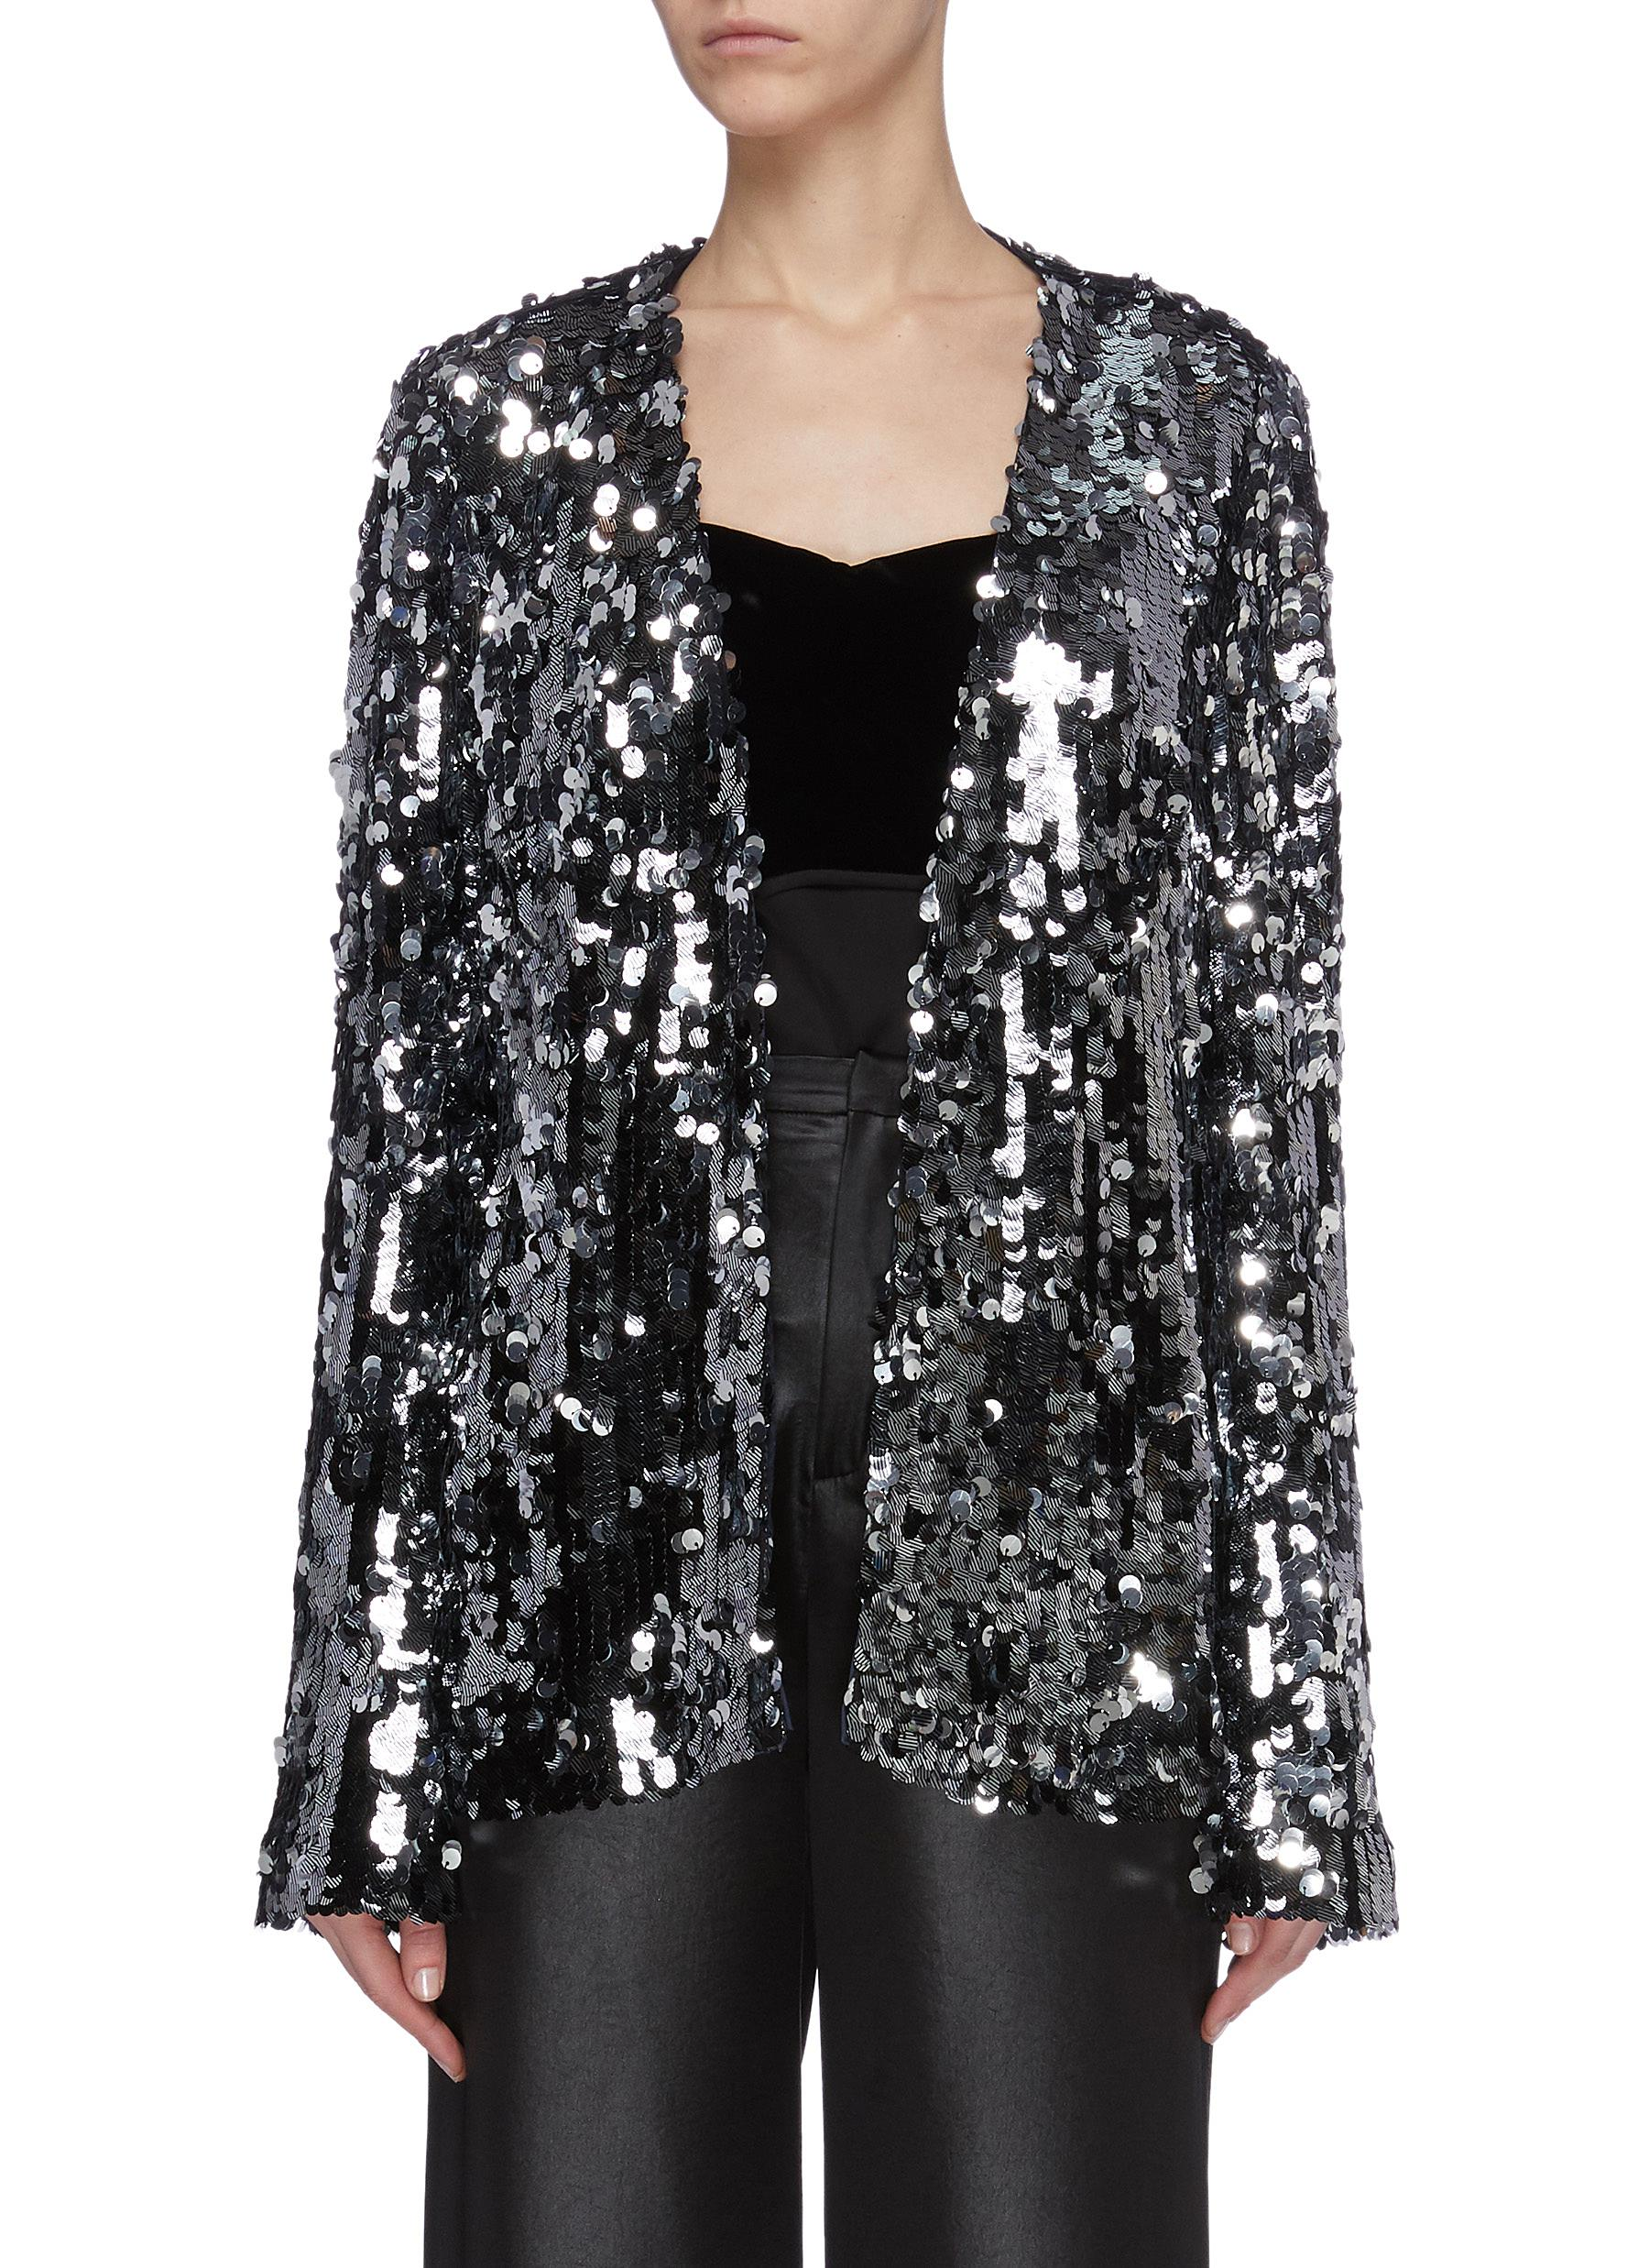 Buy Galvan London Jackets 'Gemma' sequin evening jacket